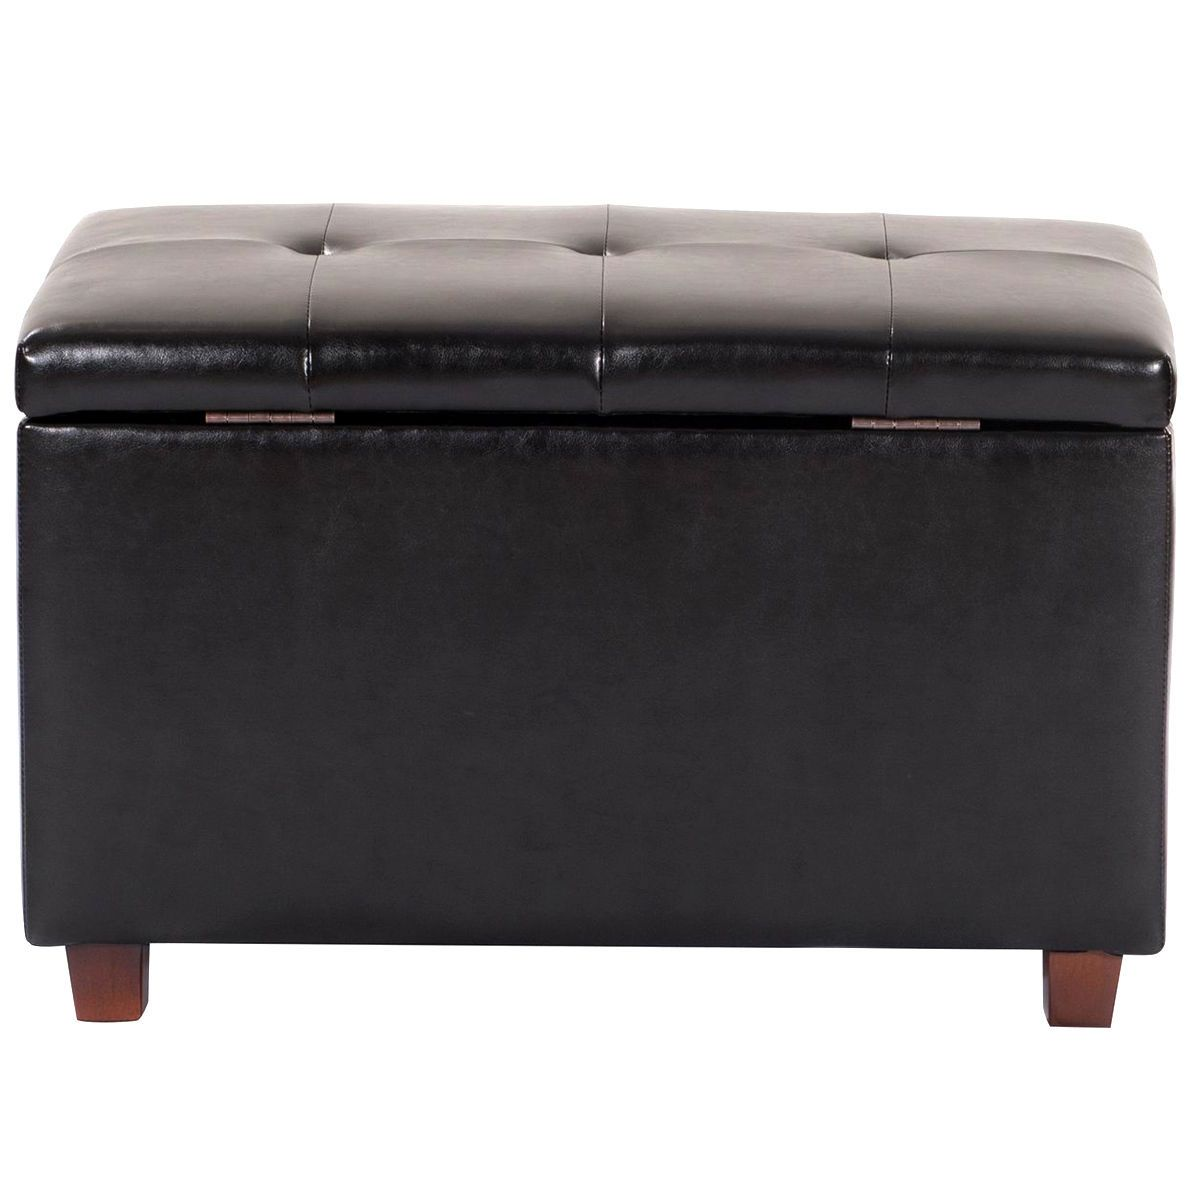 Black Tufted Lift Top Ottoman Bench